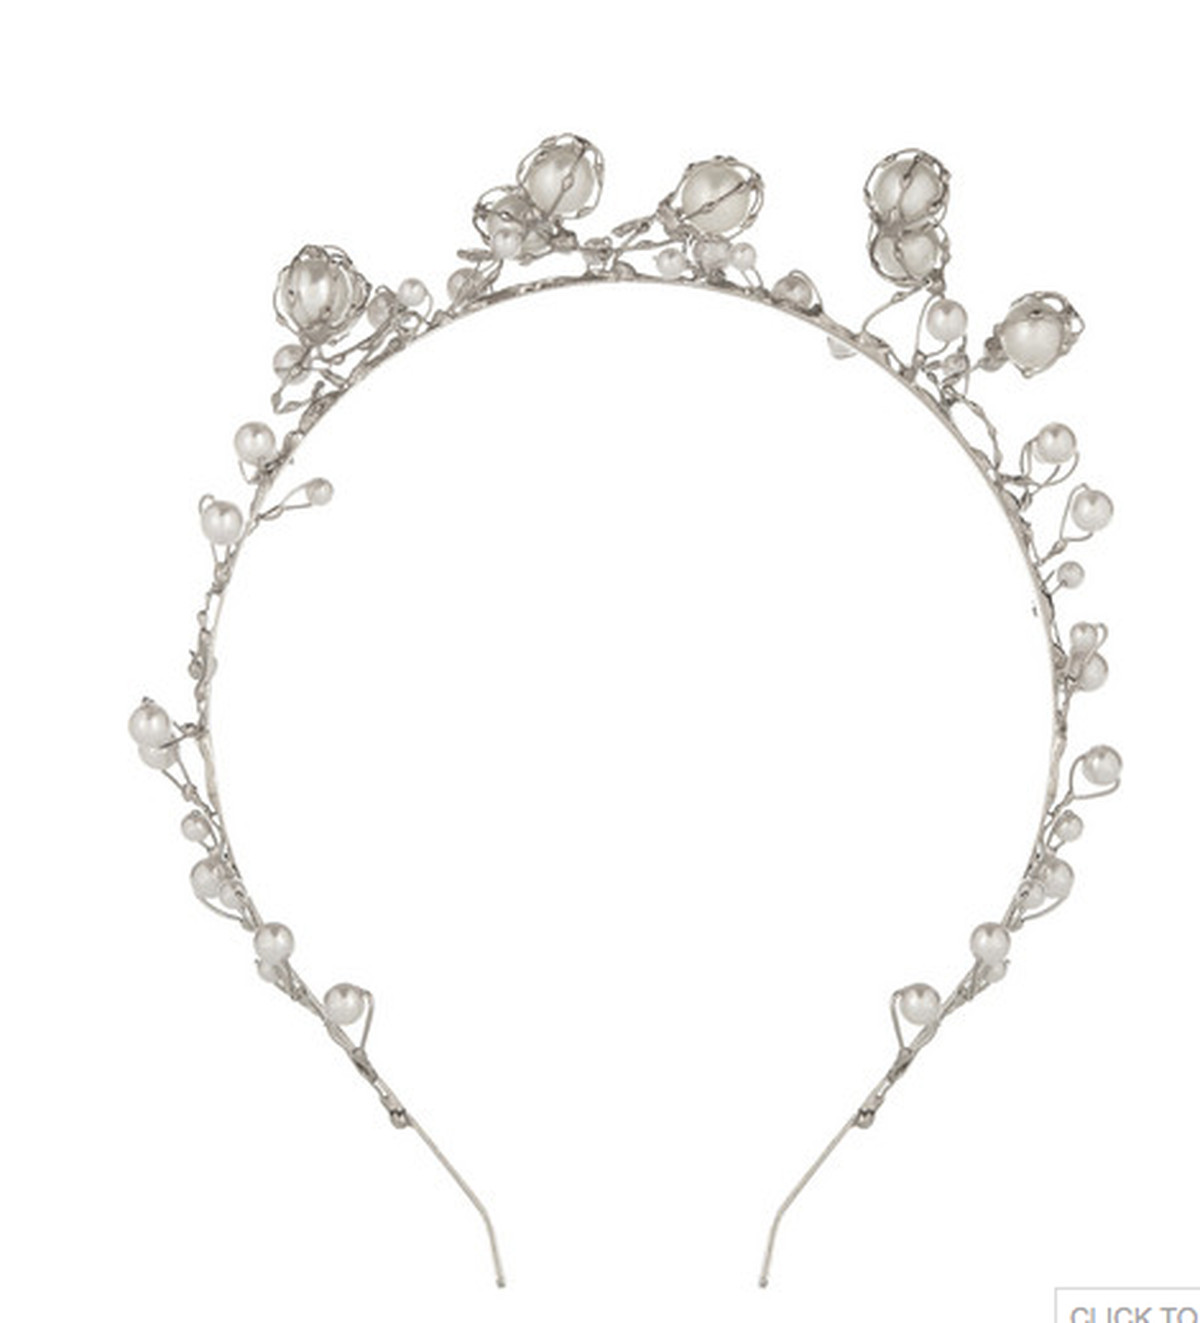 1920s Jewelry Styles in addition Roaring 20s Party further Wedding Trend Sparkly Headpieces Instead Of Veils moreover Bling Jewelry Pave Cz Art Deco Teardrop Bridal Chandelier Clip On Earrings in addition 384072674442290704. on great gatsby inspired clip art